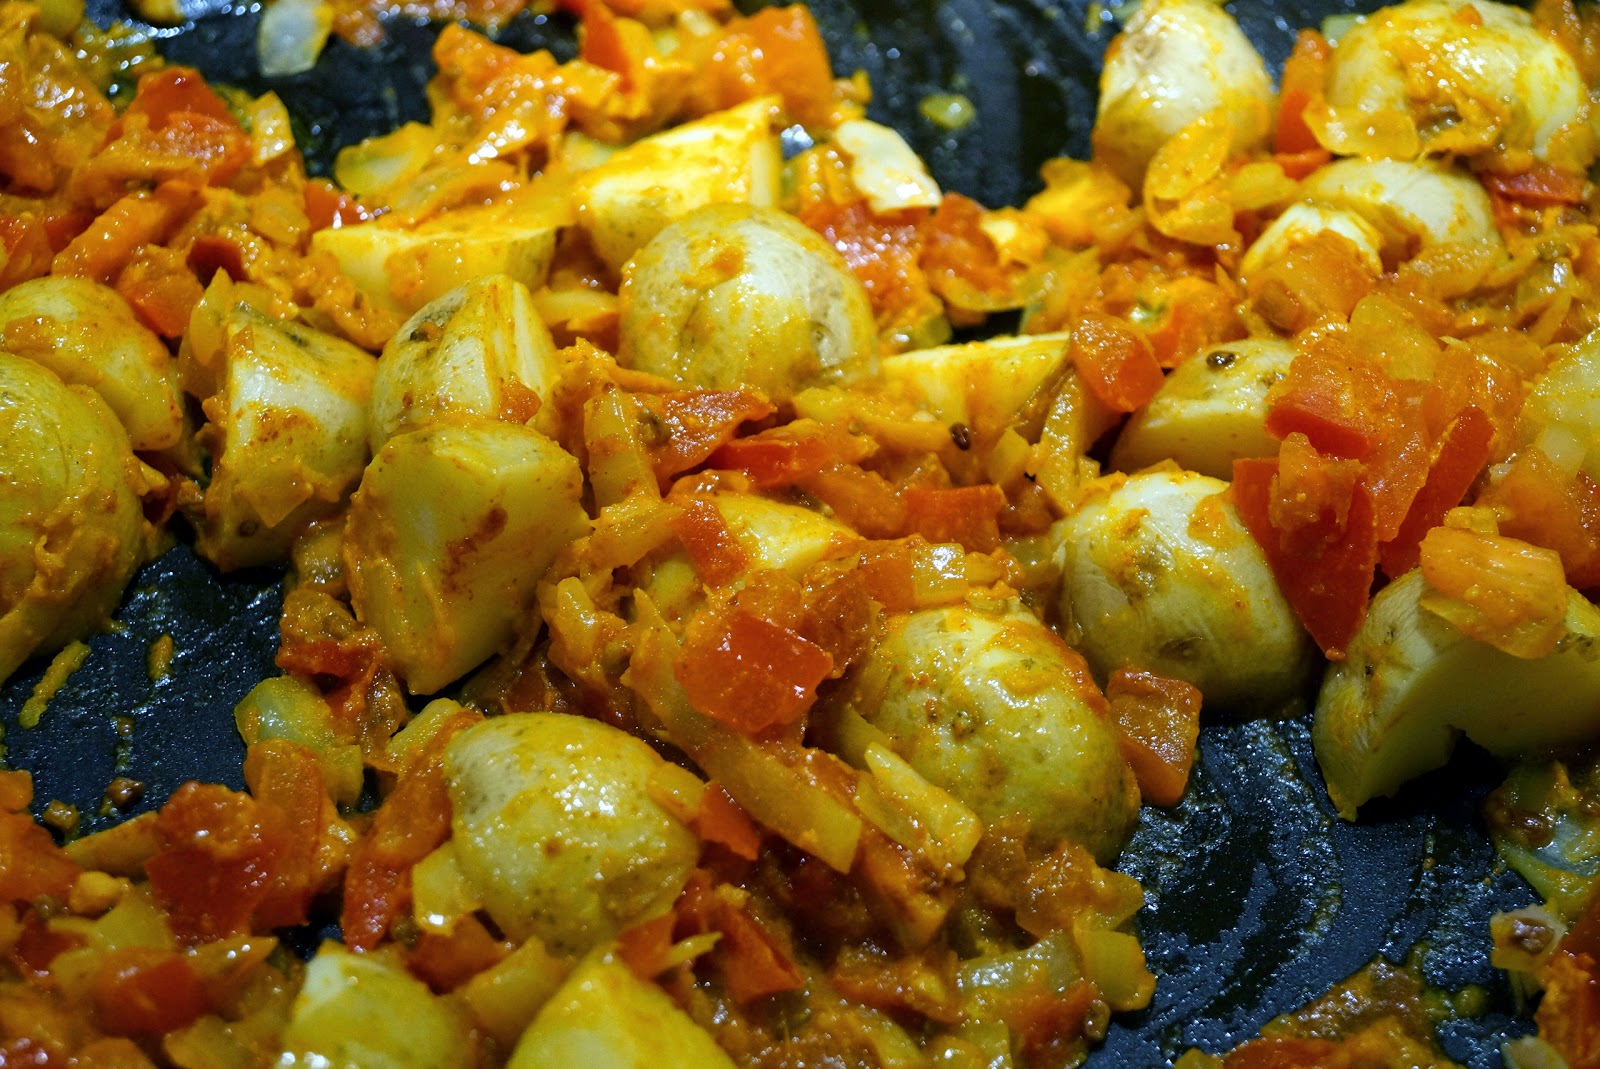 Onions and paper aludam nepalese spiced potatoes aludam nepalese spiced potatoes forumfinder Choice Image